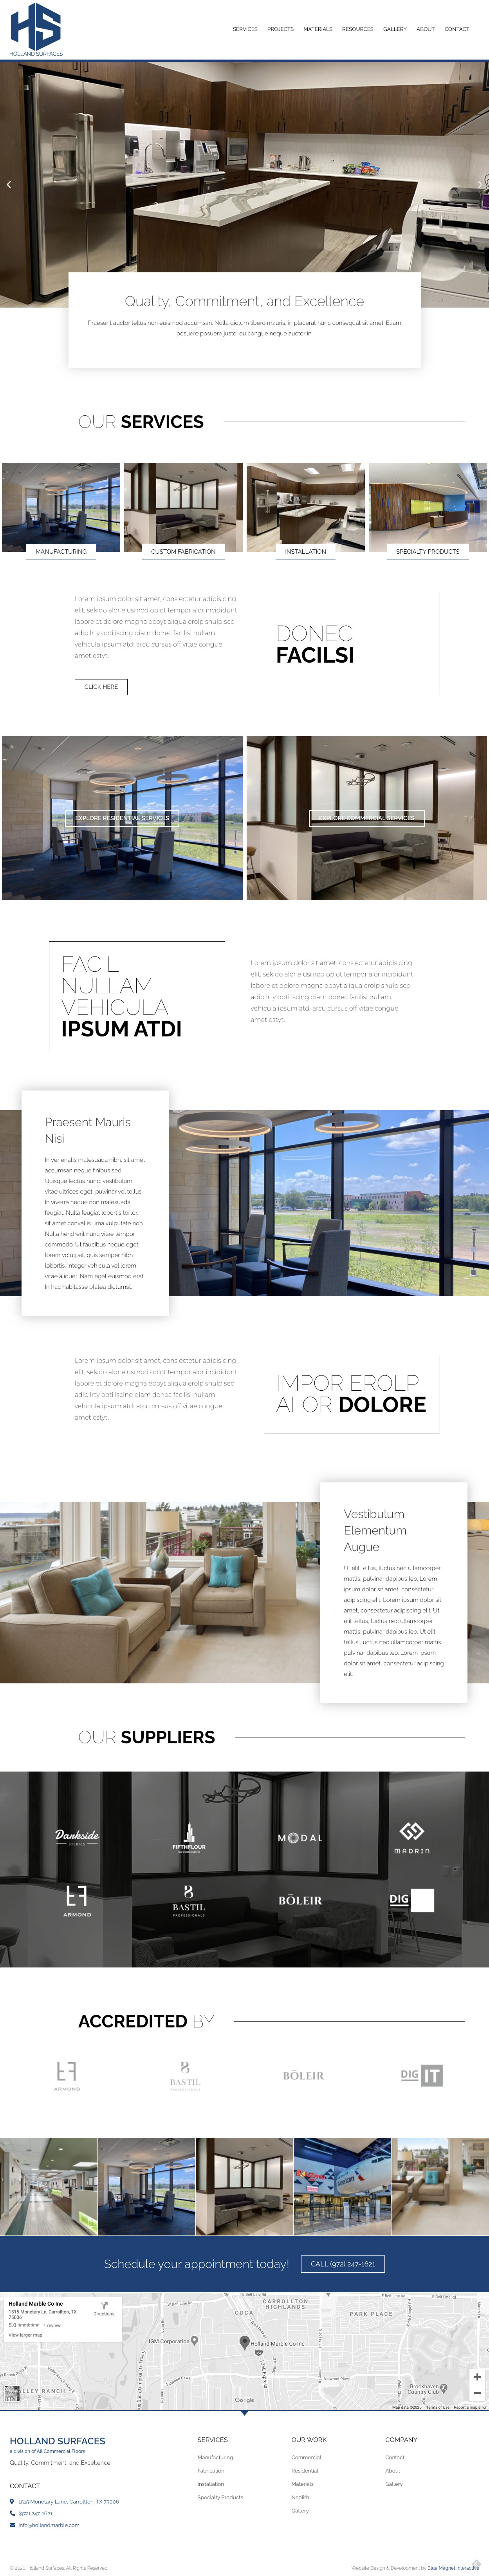 web design example holland surfaces